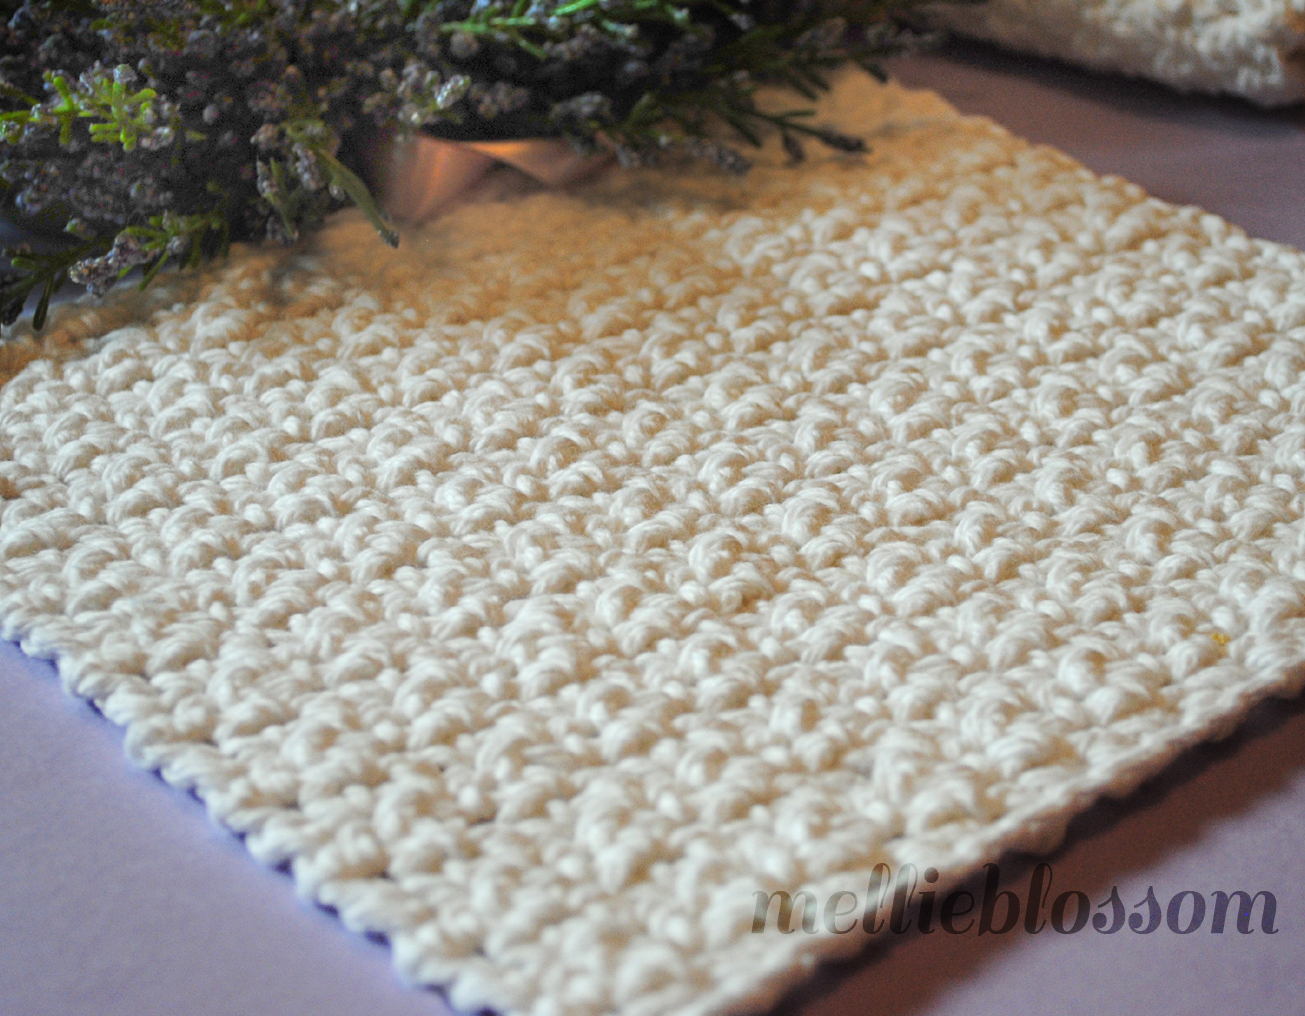 Crocheting Easy Patterns : Free Easy Crochet Dishcloth Pattern - mellie blossom